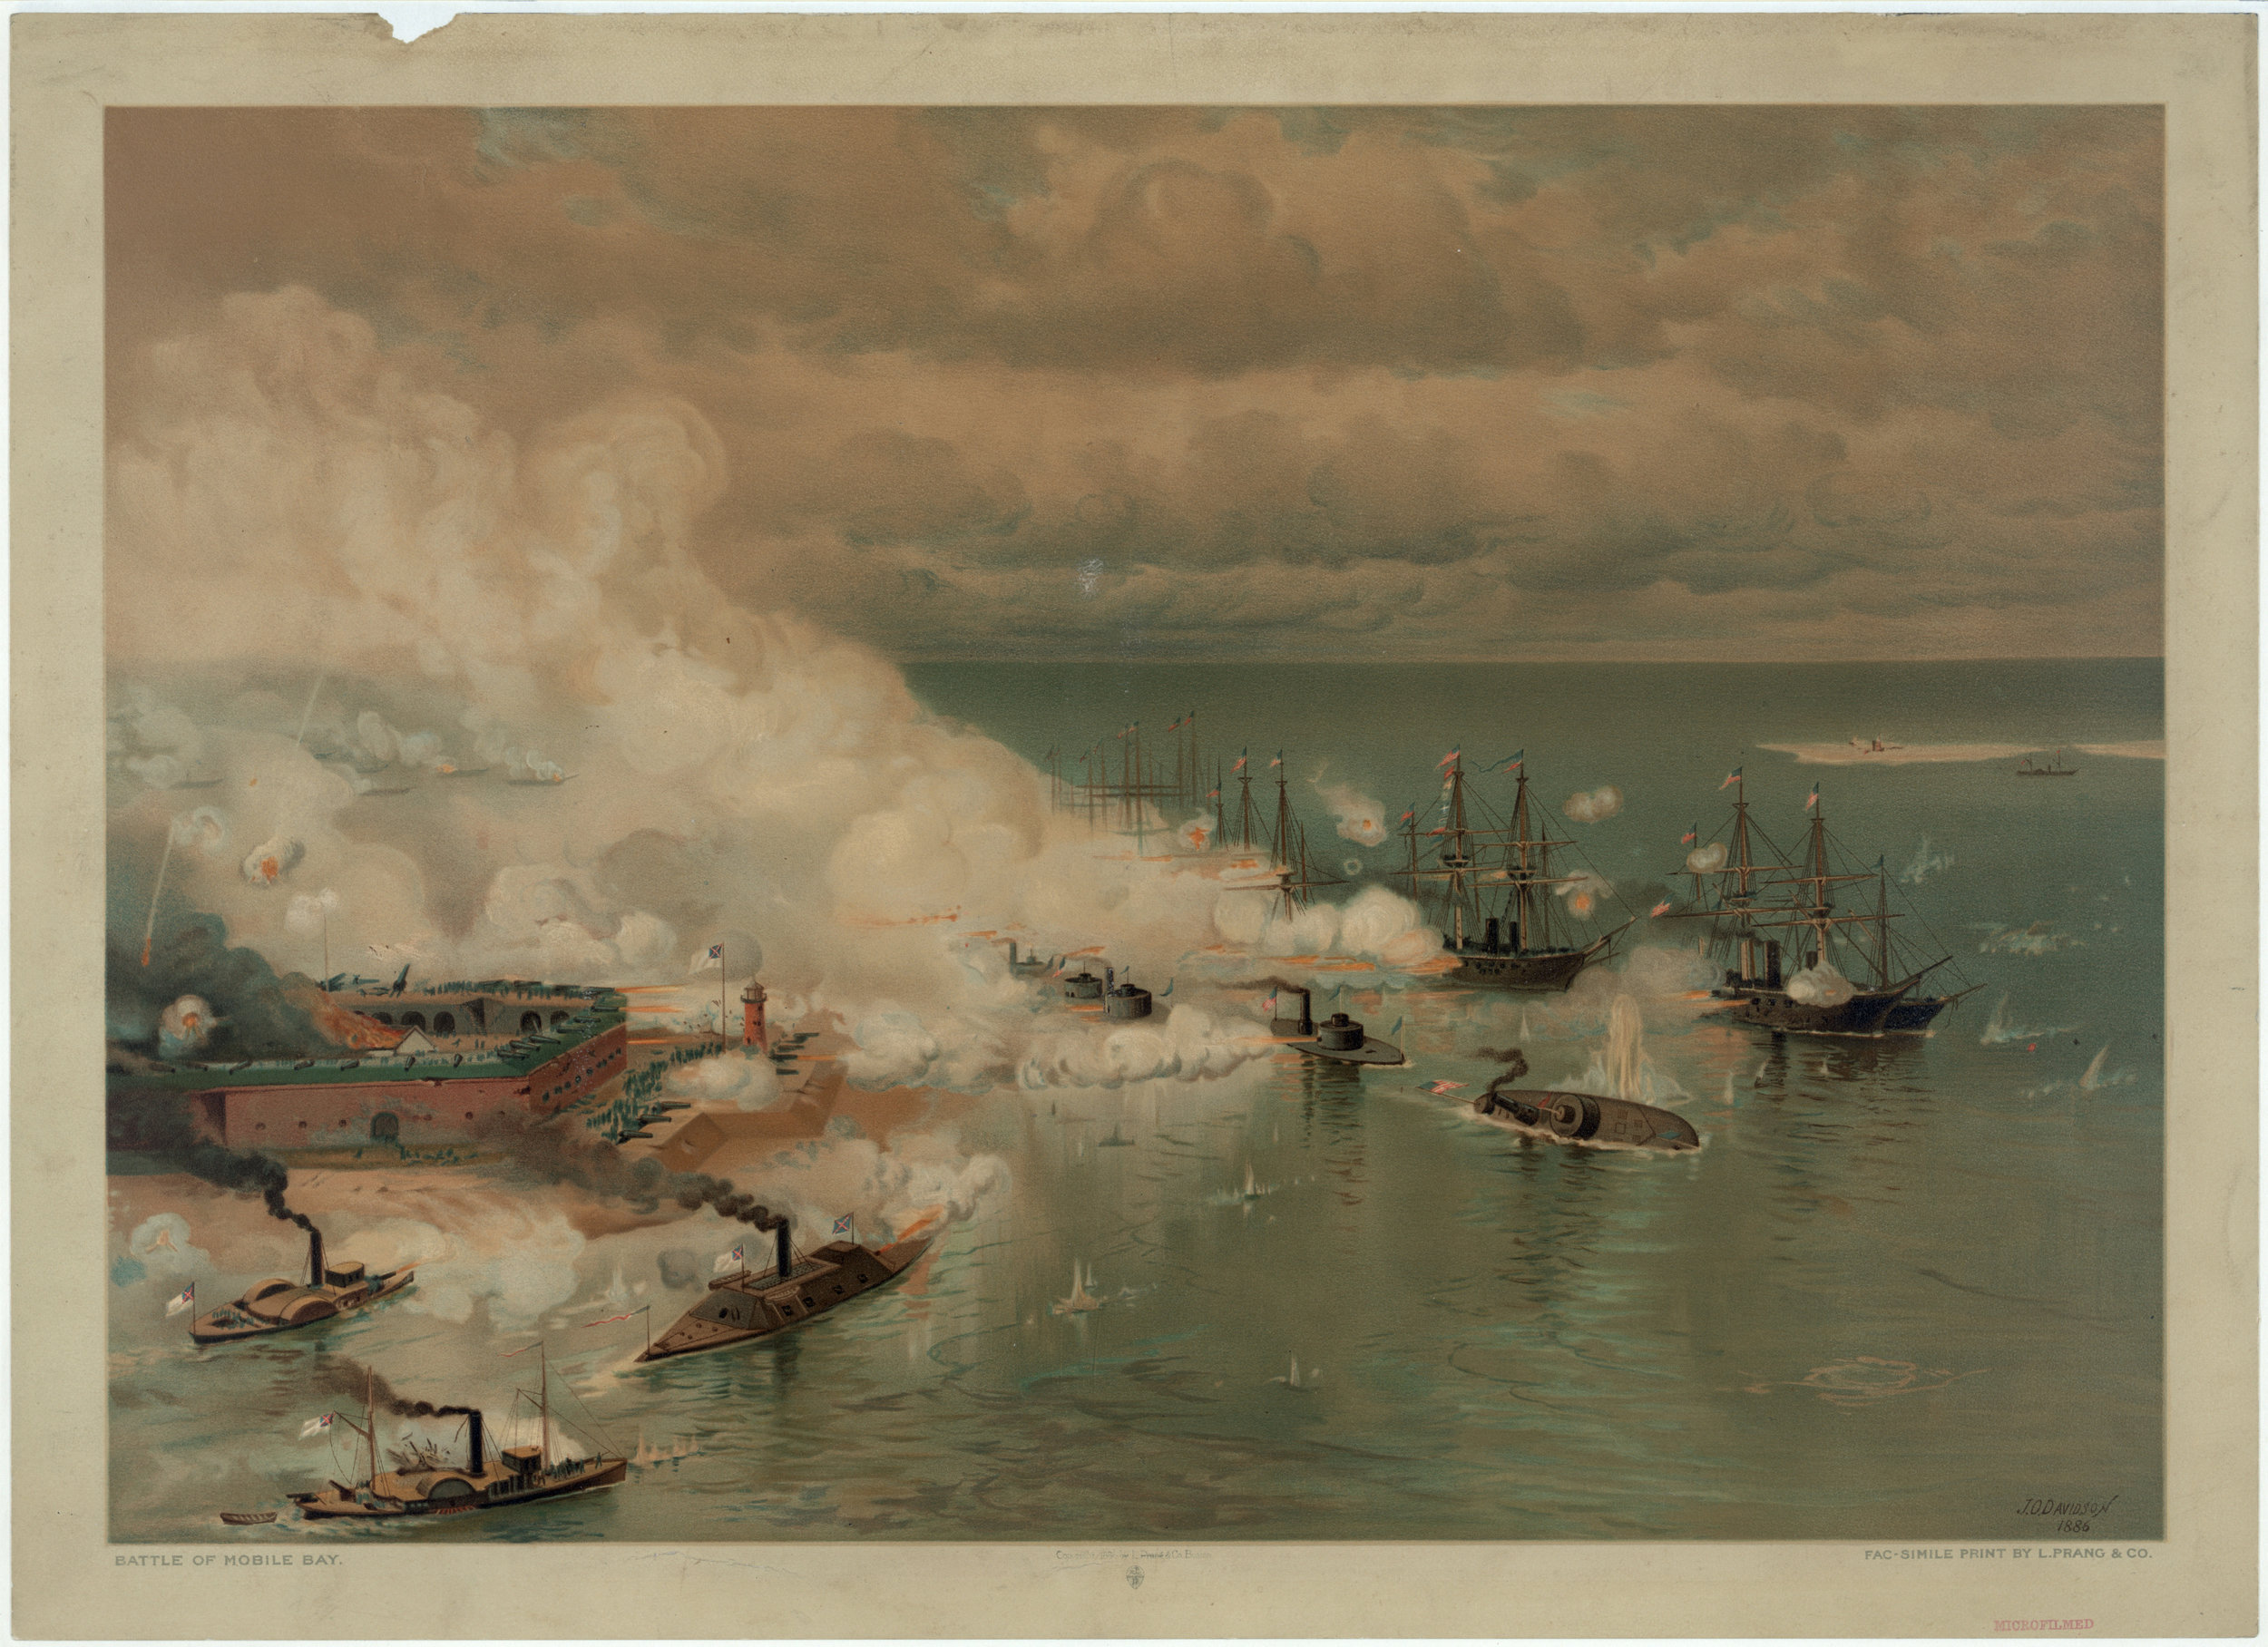 Julian O. Davidson. Battle of Mobile Bay. ca. 1864 (Louis Prang & Co.)